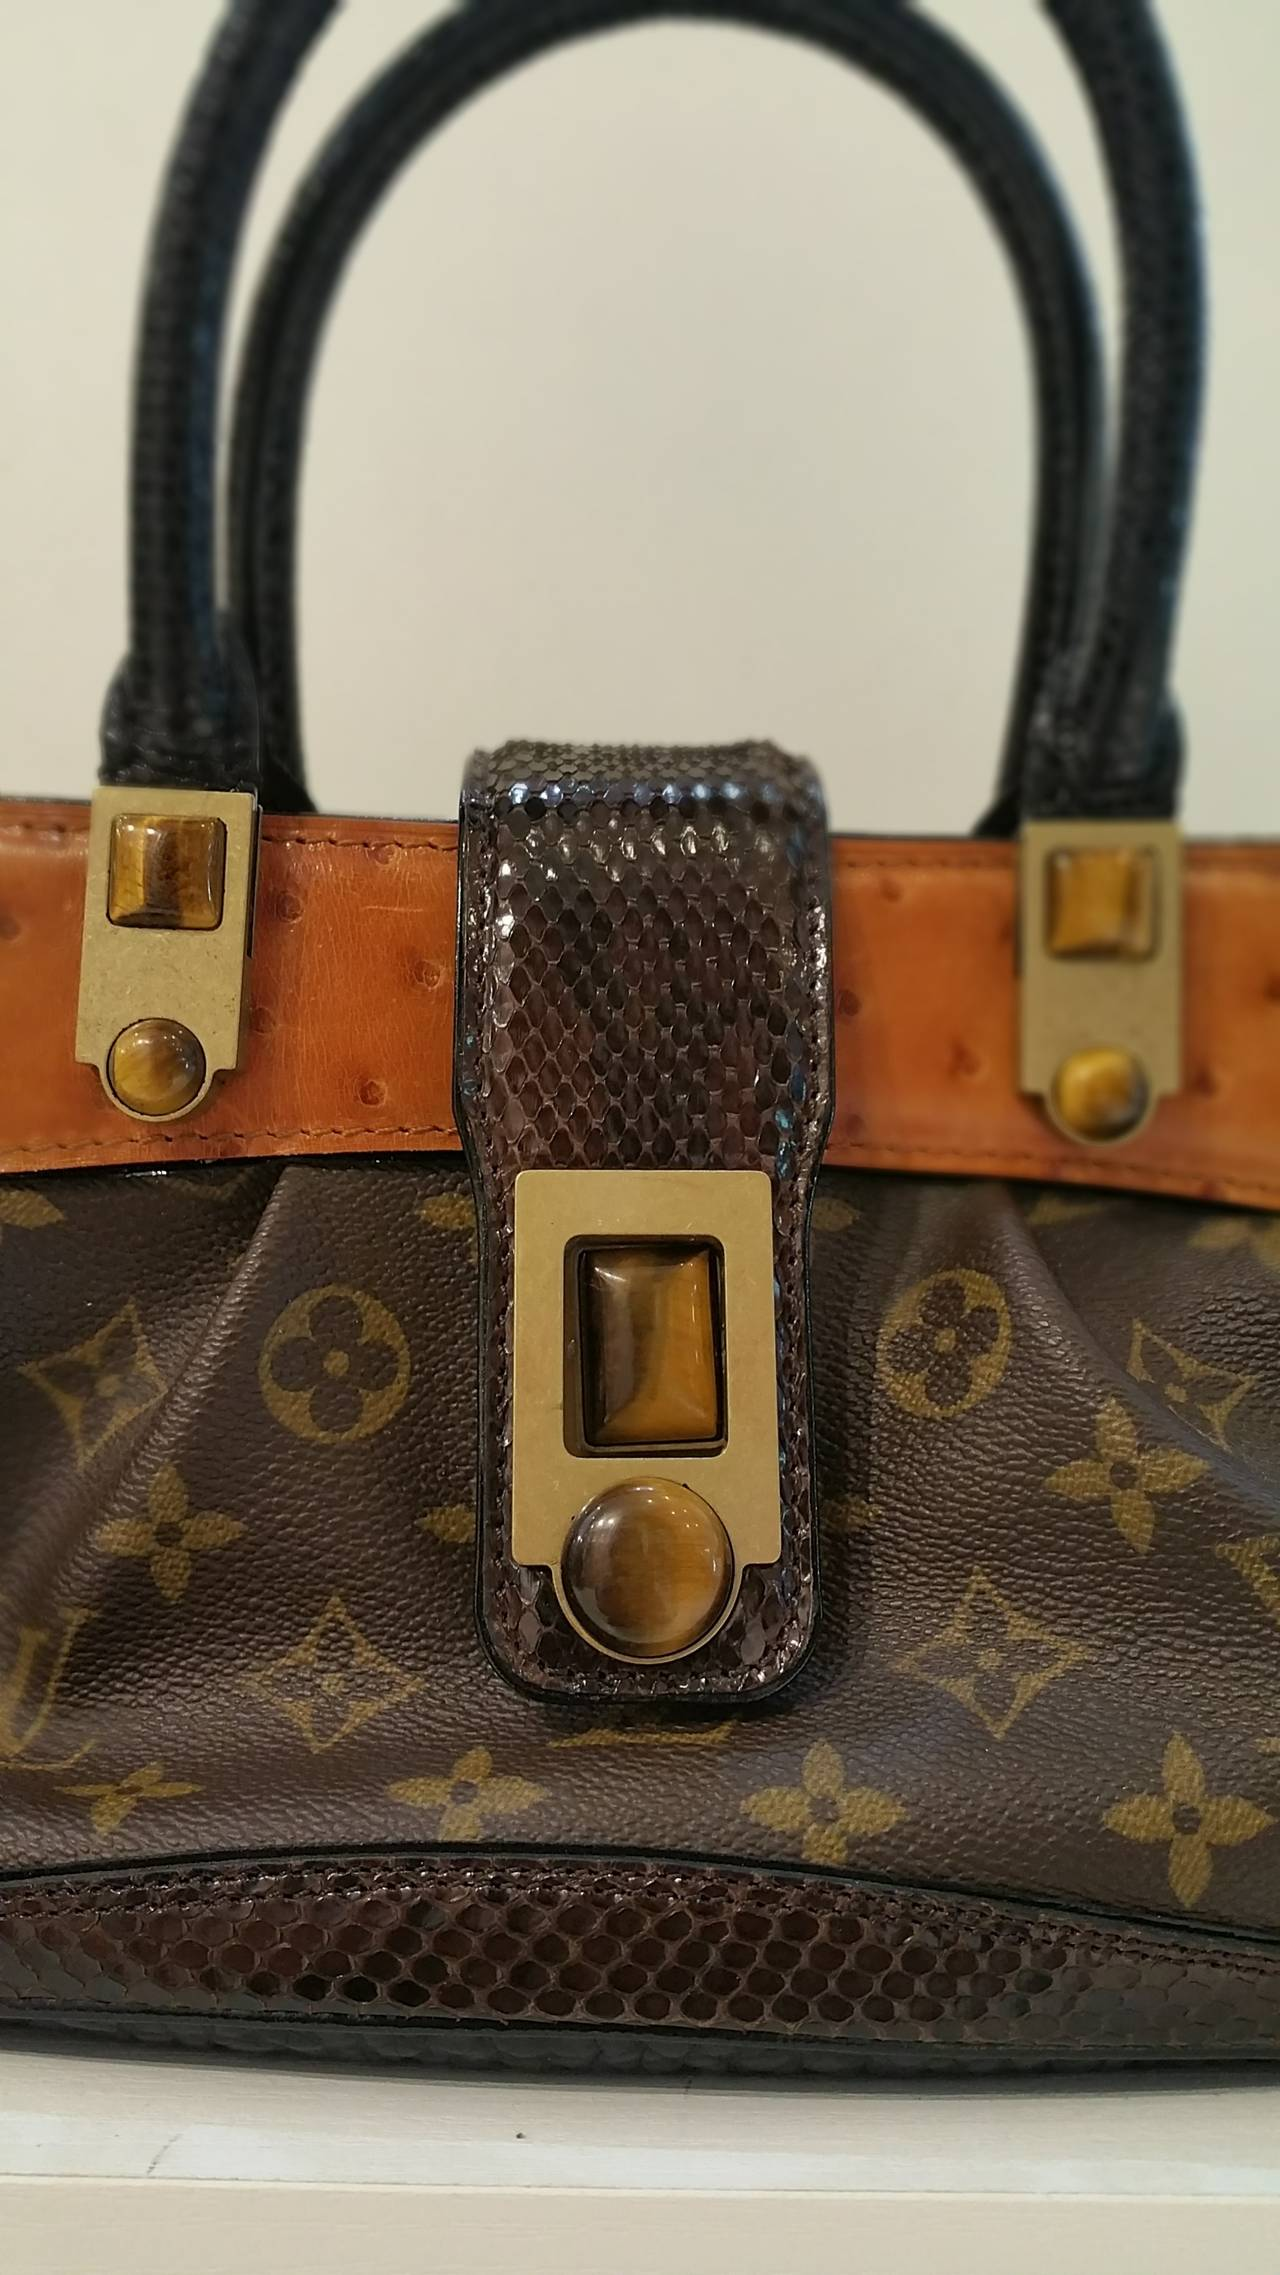 7760fd4d06c0 This is the stunning and authentic LOUIS VUITTON Waltz MACHA Exotic Ostrich  Bag. This Louis